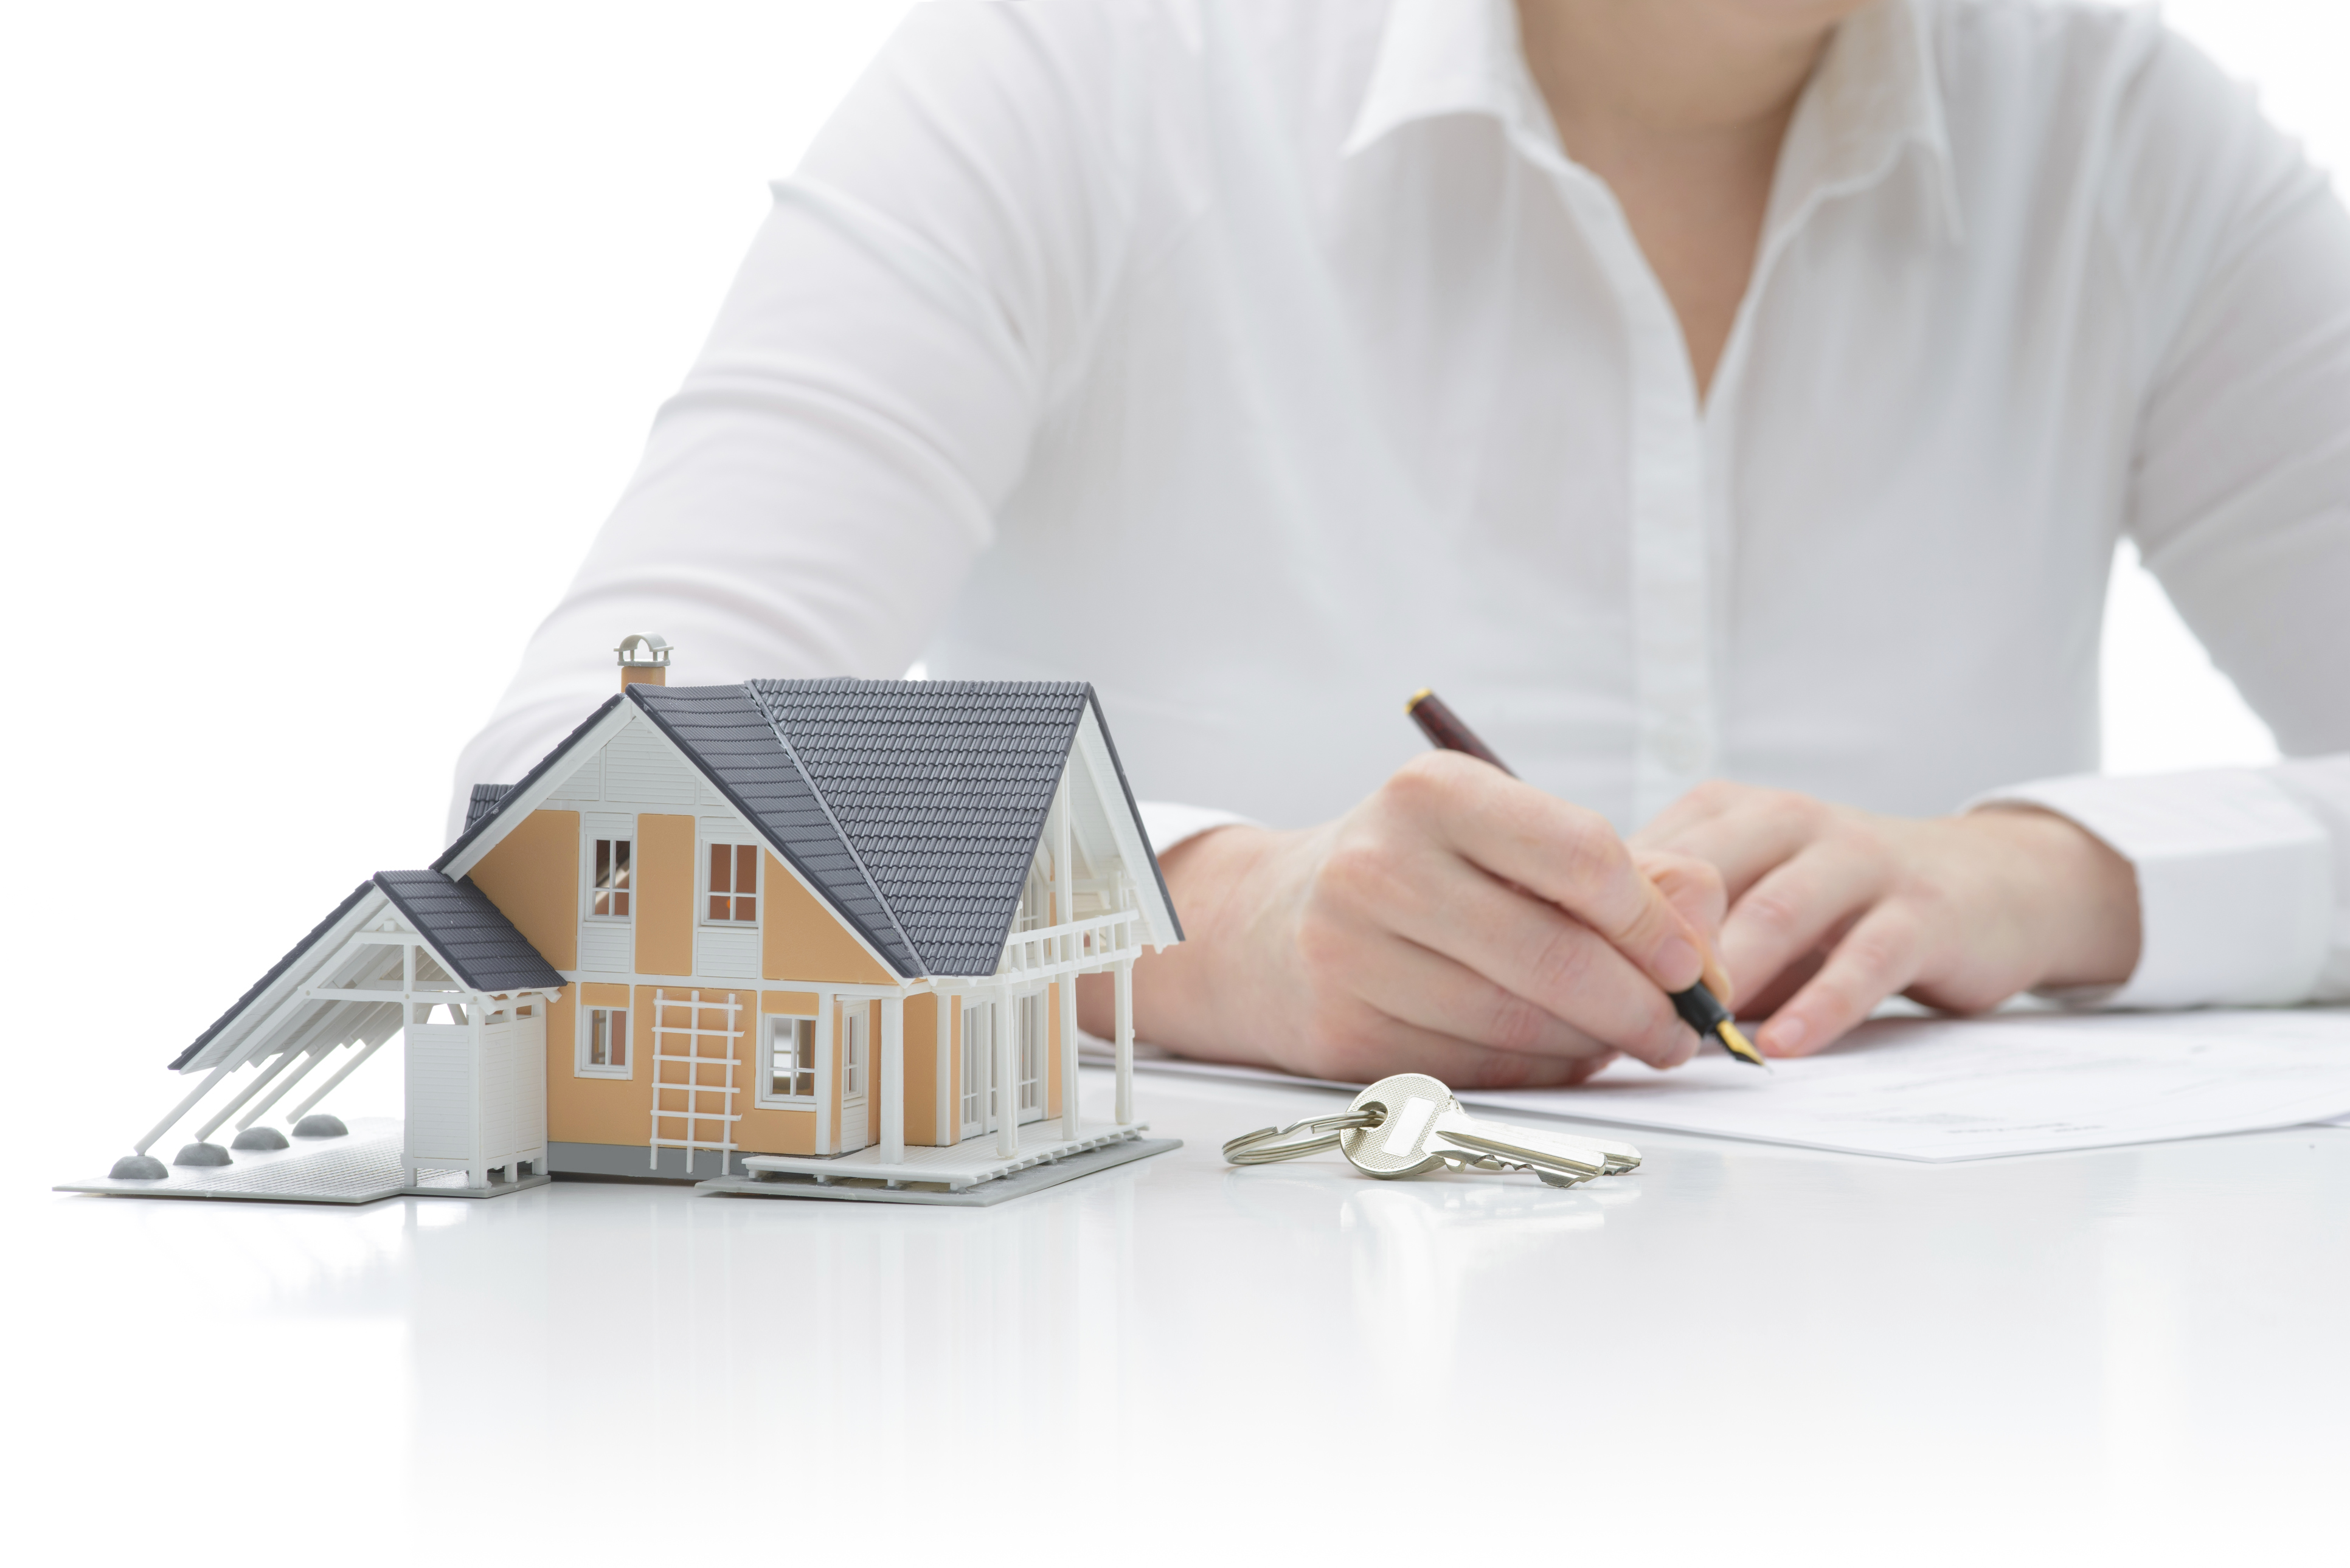 Can You Transfer Mortgage Of Property Instead Of Selling It